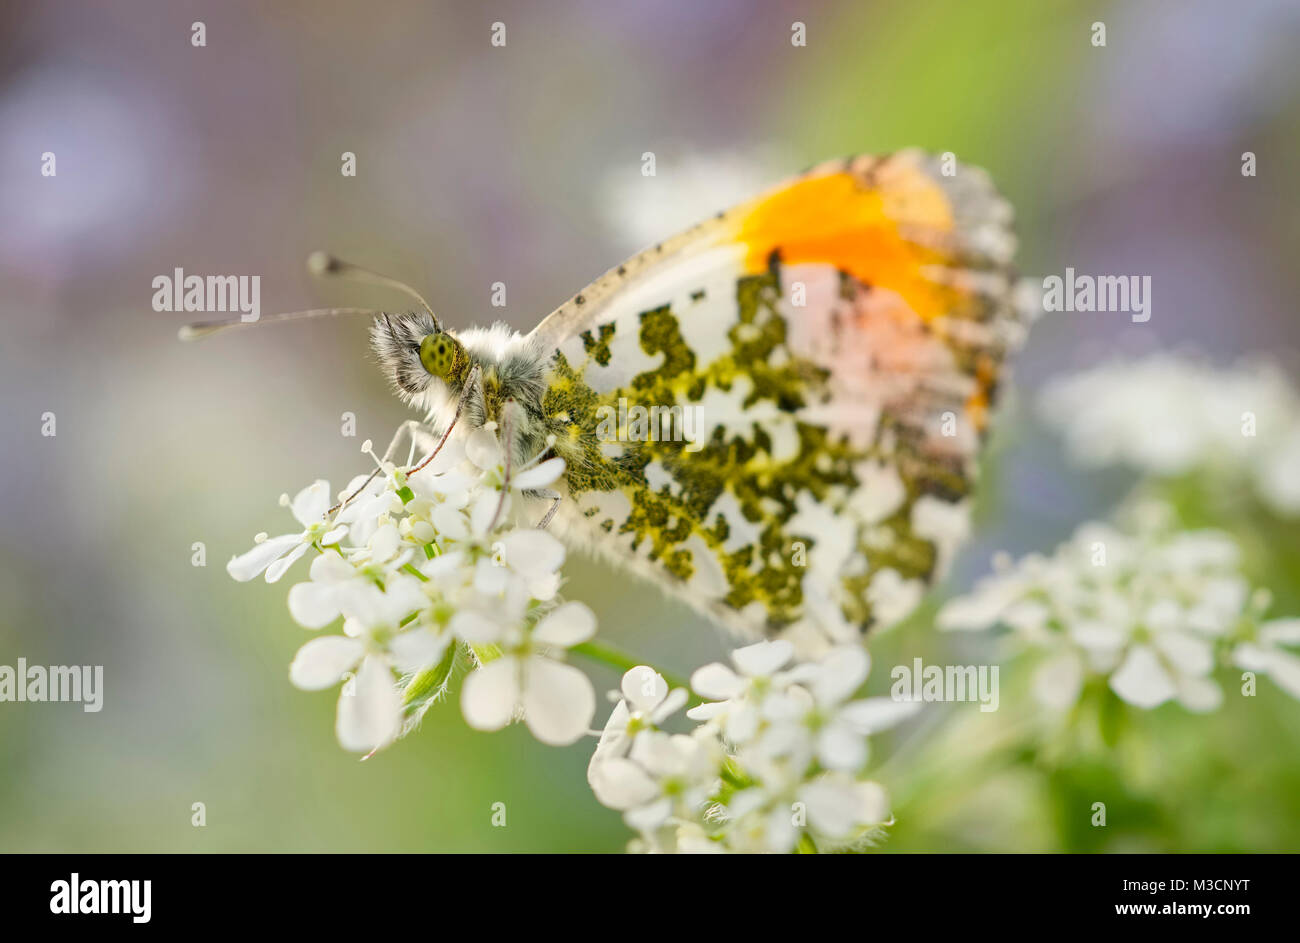 Orange Tip butterfly on Cow Parsley flowers - Anthocharis cardamines - Stock Image